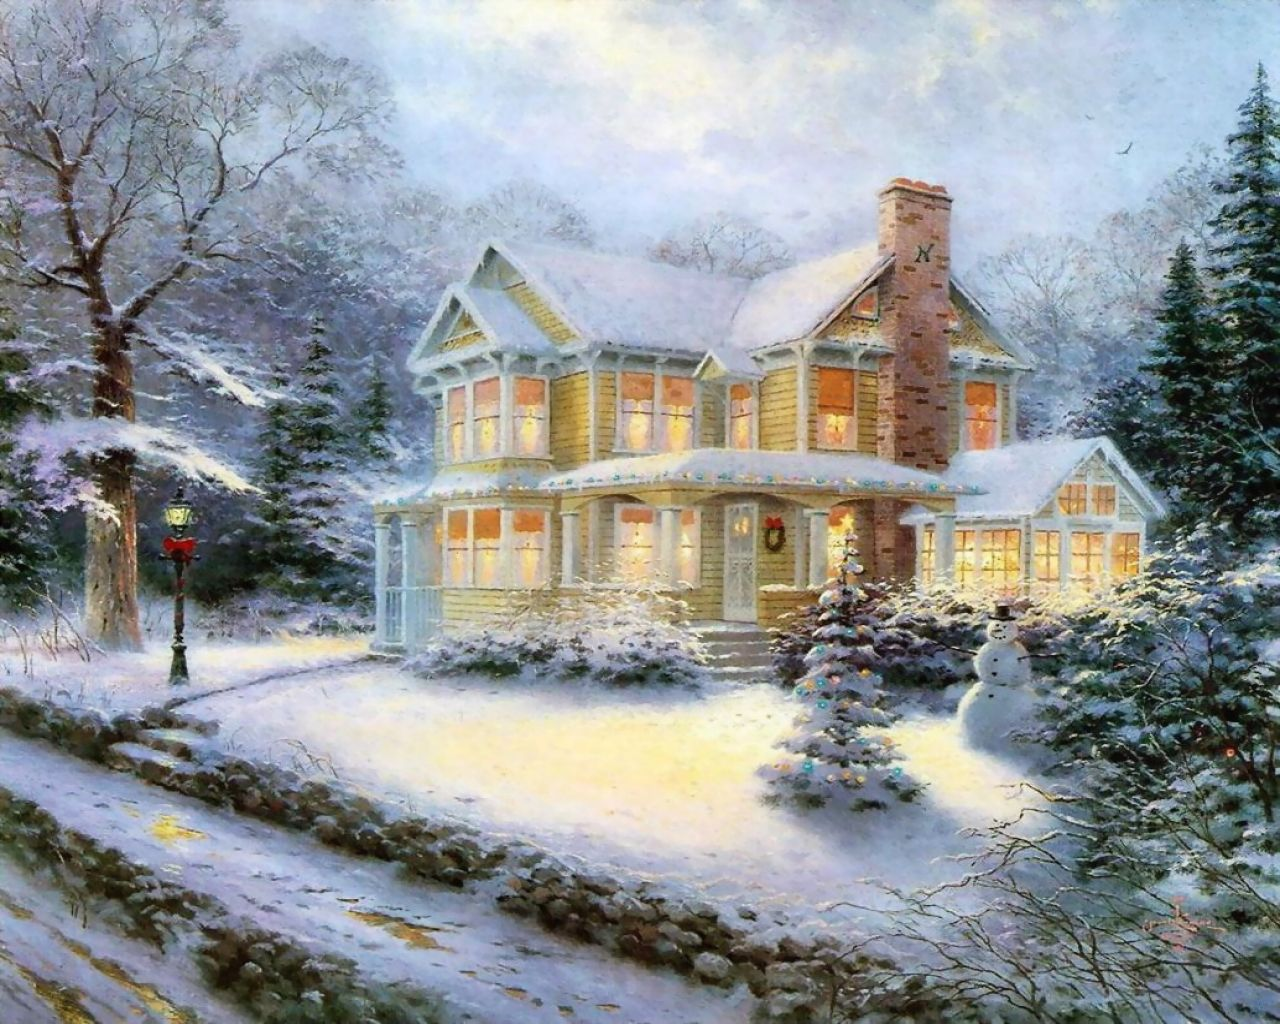 Winter Wallpaper For Computer Thomas Kinkaid THOMAS KINKADE FOR TODAY mardecortsbaja com